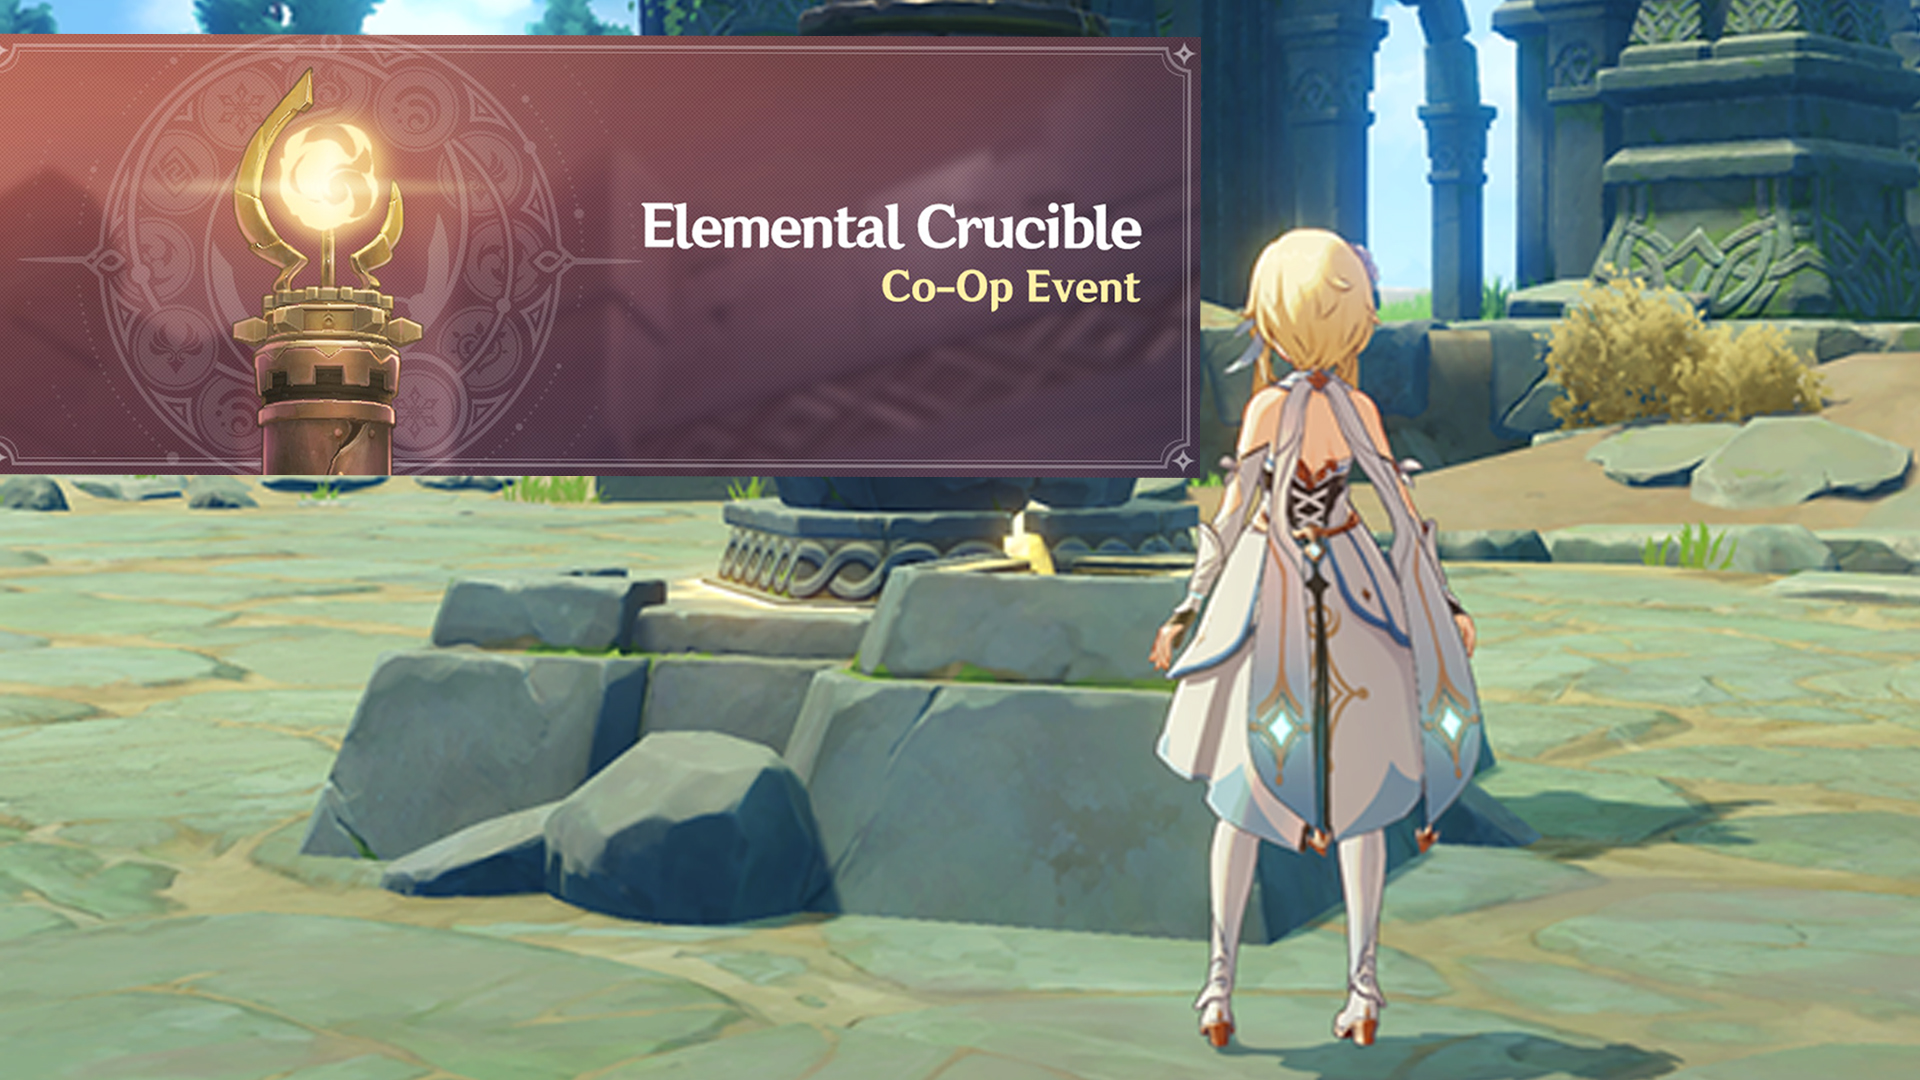 How To Play The Genshin Impact Co Op Event And Claim Your Elemental Crucible Rewards Gamesradar